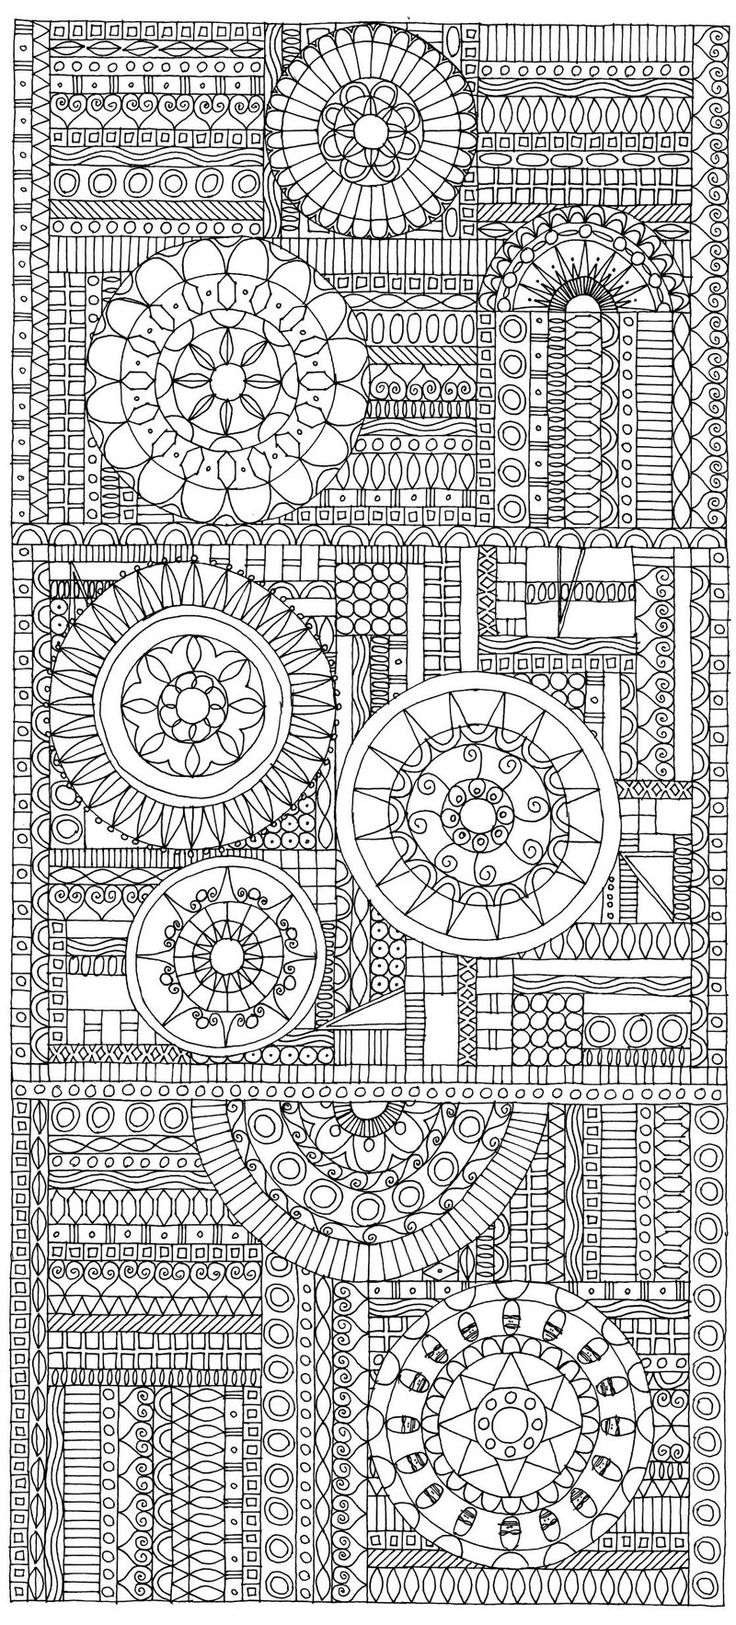 Lotus designs coloring book - Miriam Badyrka Is The Doodler Animals People